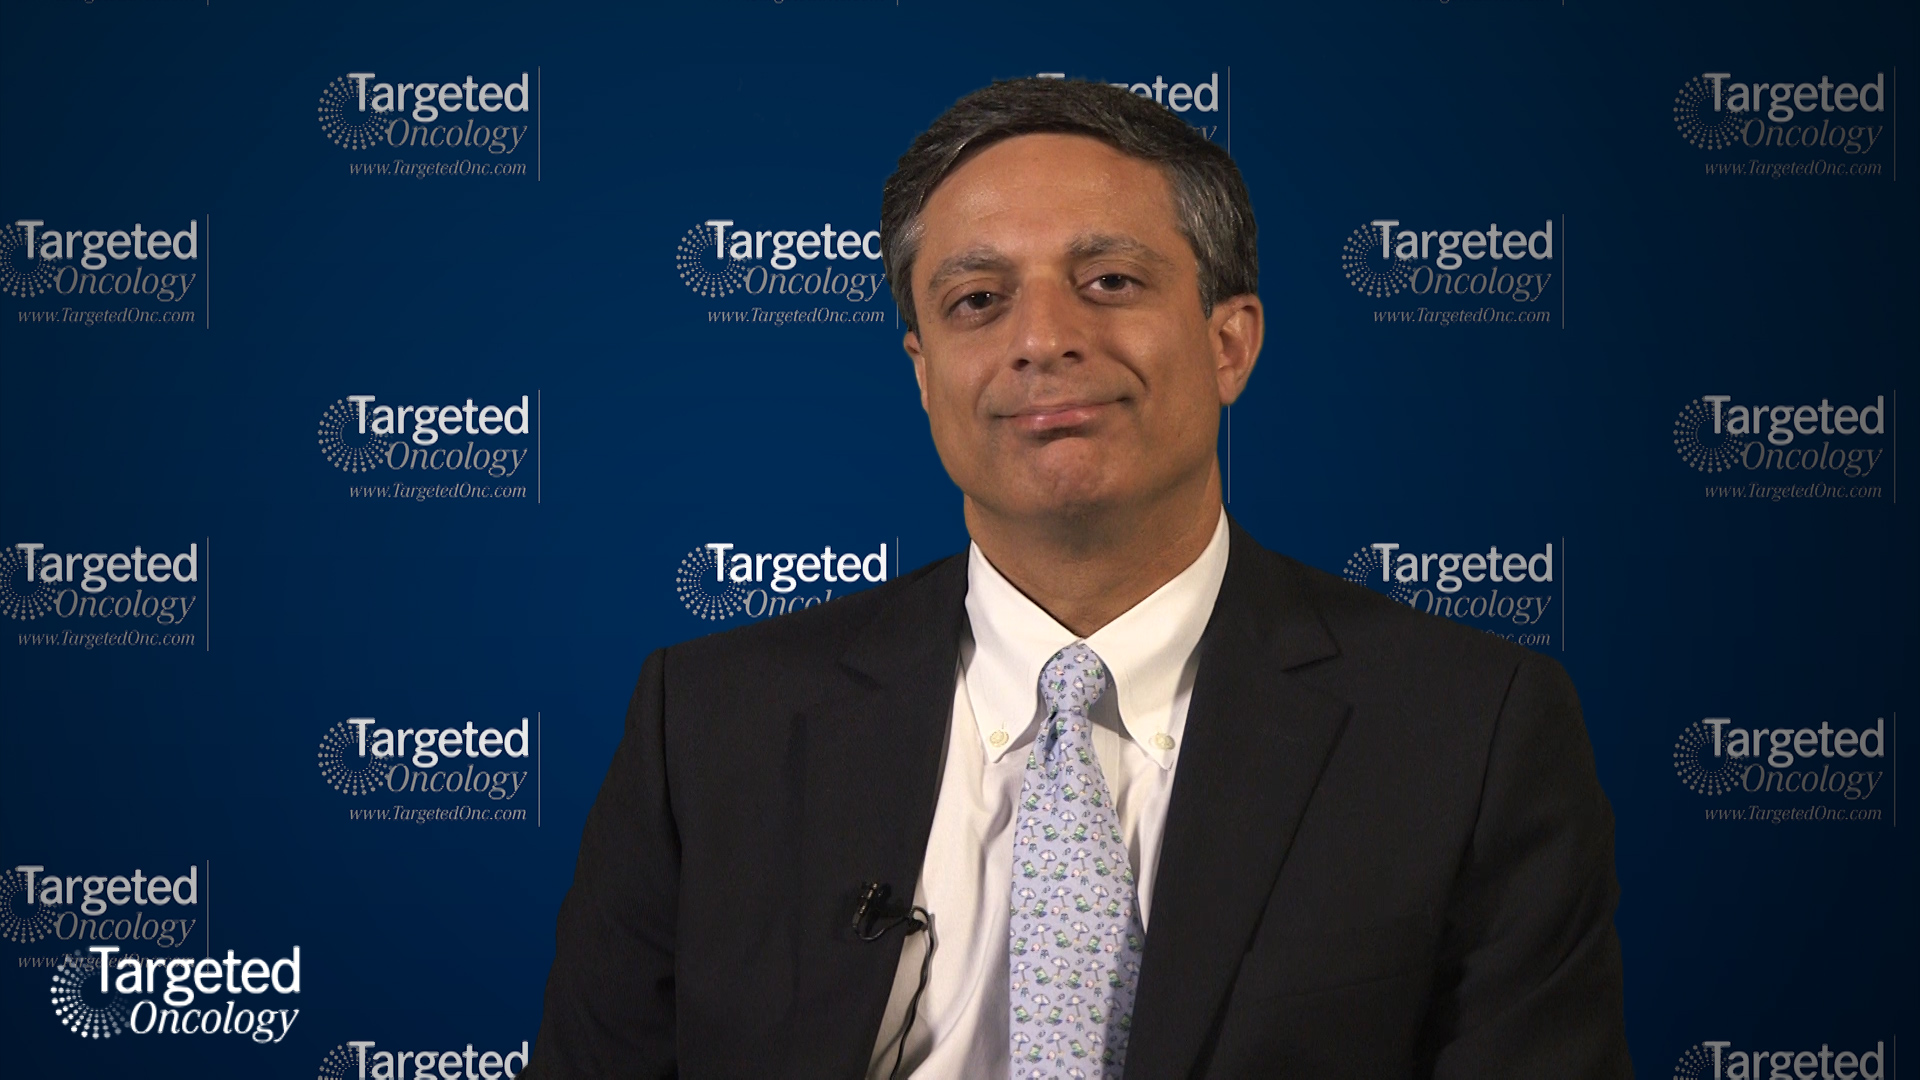 Suitability for Transplant in Multiple Myeloma